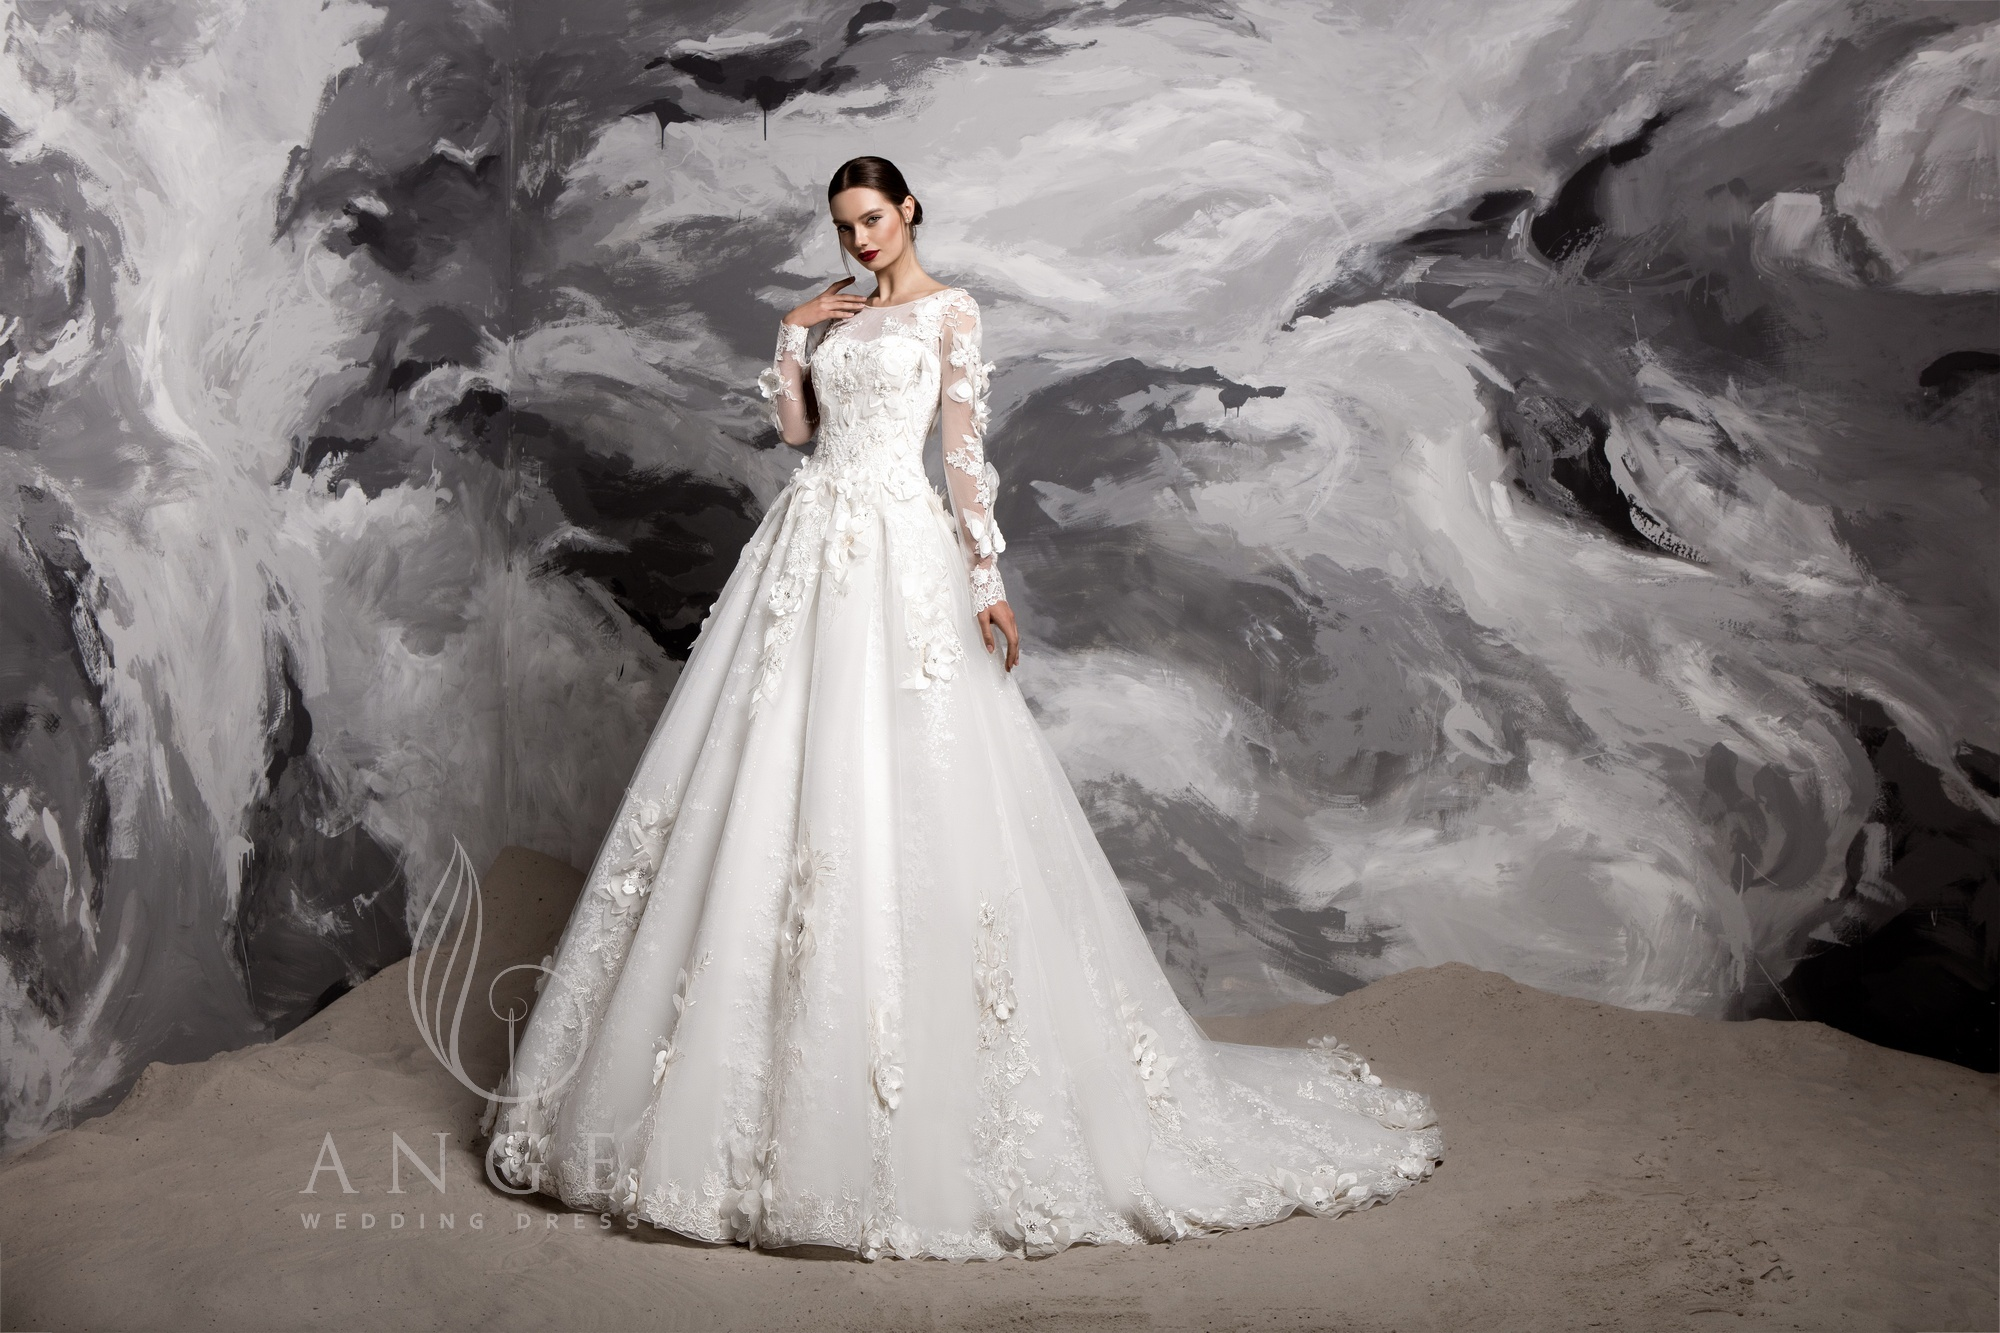 https://angel-novias.com/images/stories/virtuemart/product/Ariena.jpg